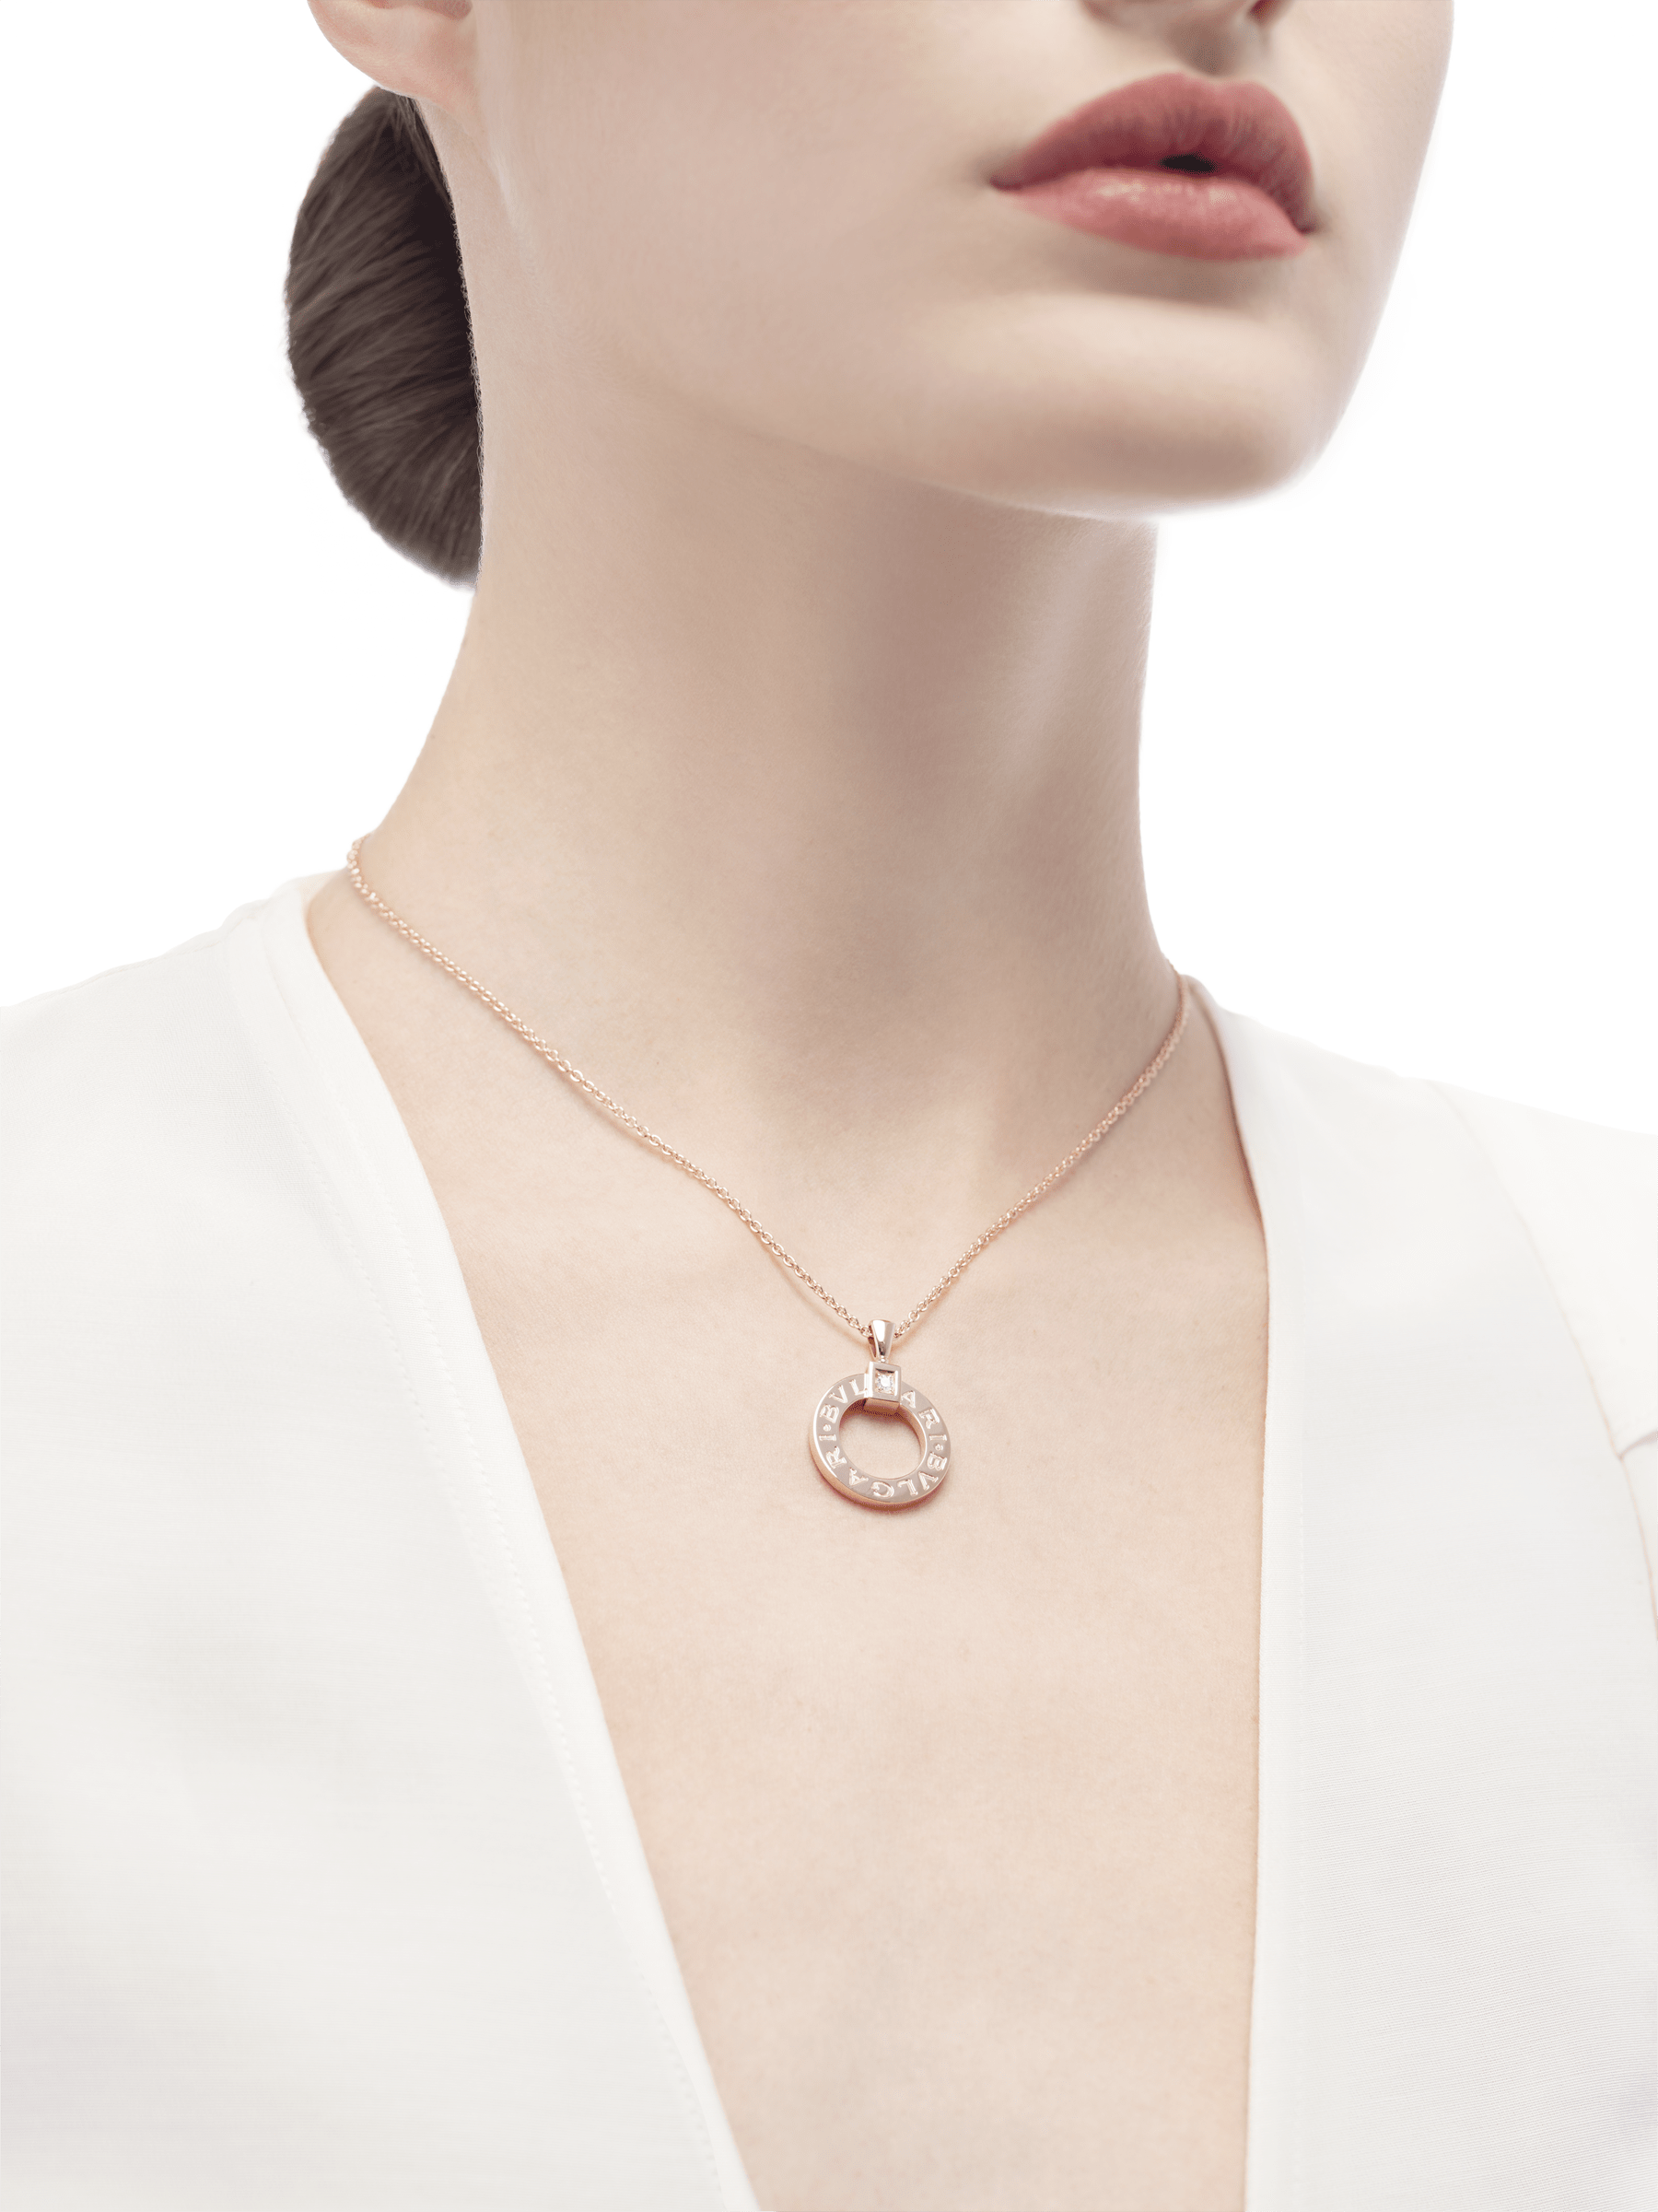 BVLGARI BVLGARI necklace with 18 kt rose gold chain and 18 kt rose gold pendant set with a diamond 344492 image 4